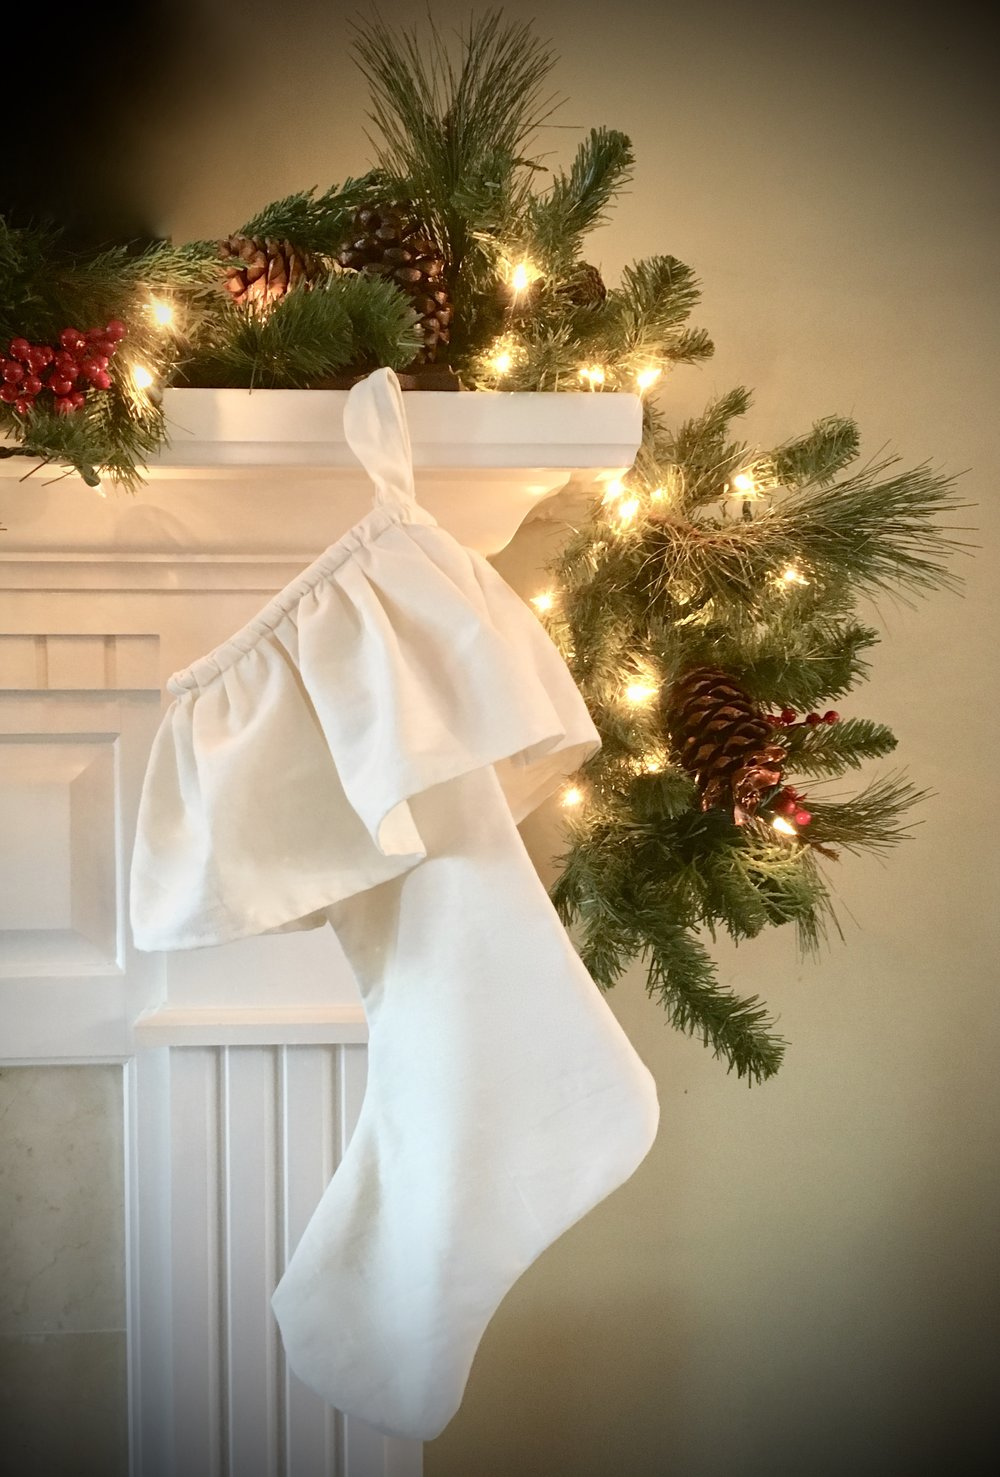 "Our Alexandra Lauren Ruffled Christmas stockings make the perfect addition to your mantle! Available on our website under ""Shop Our favorite things.""  Our lined linen stockings are available in four colors including: Parchment (as shown), French Blue, Soft Green and Christmas Rose.  All of our linens are proudly made in Tennessee!"